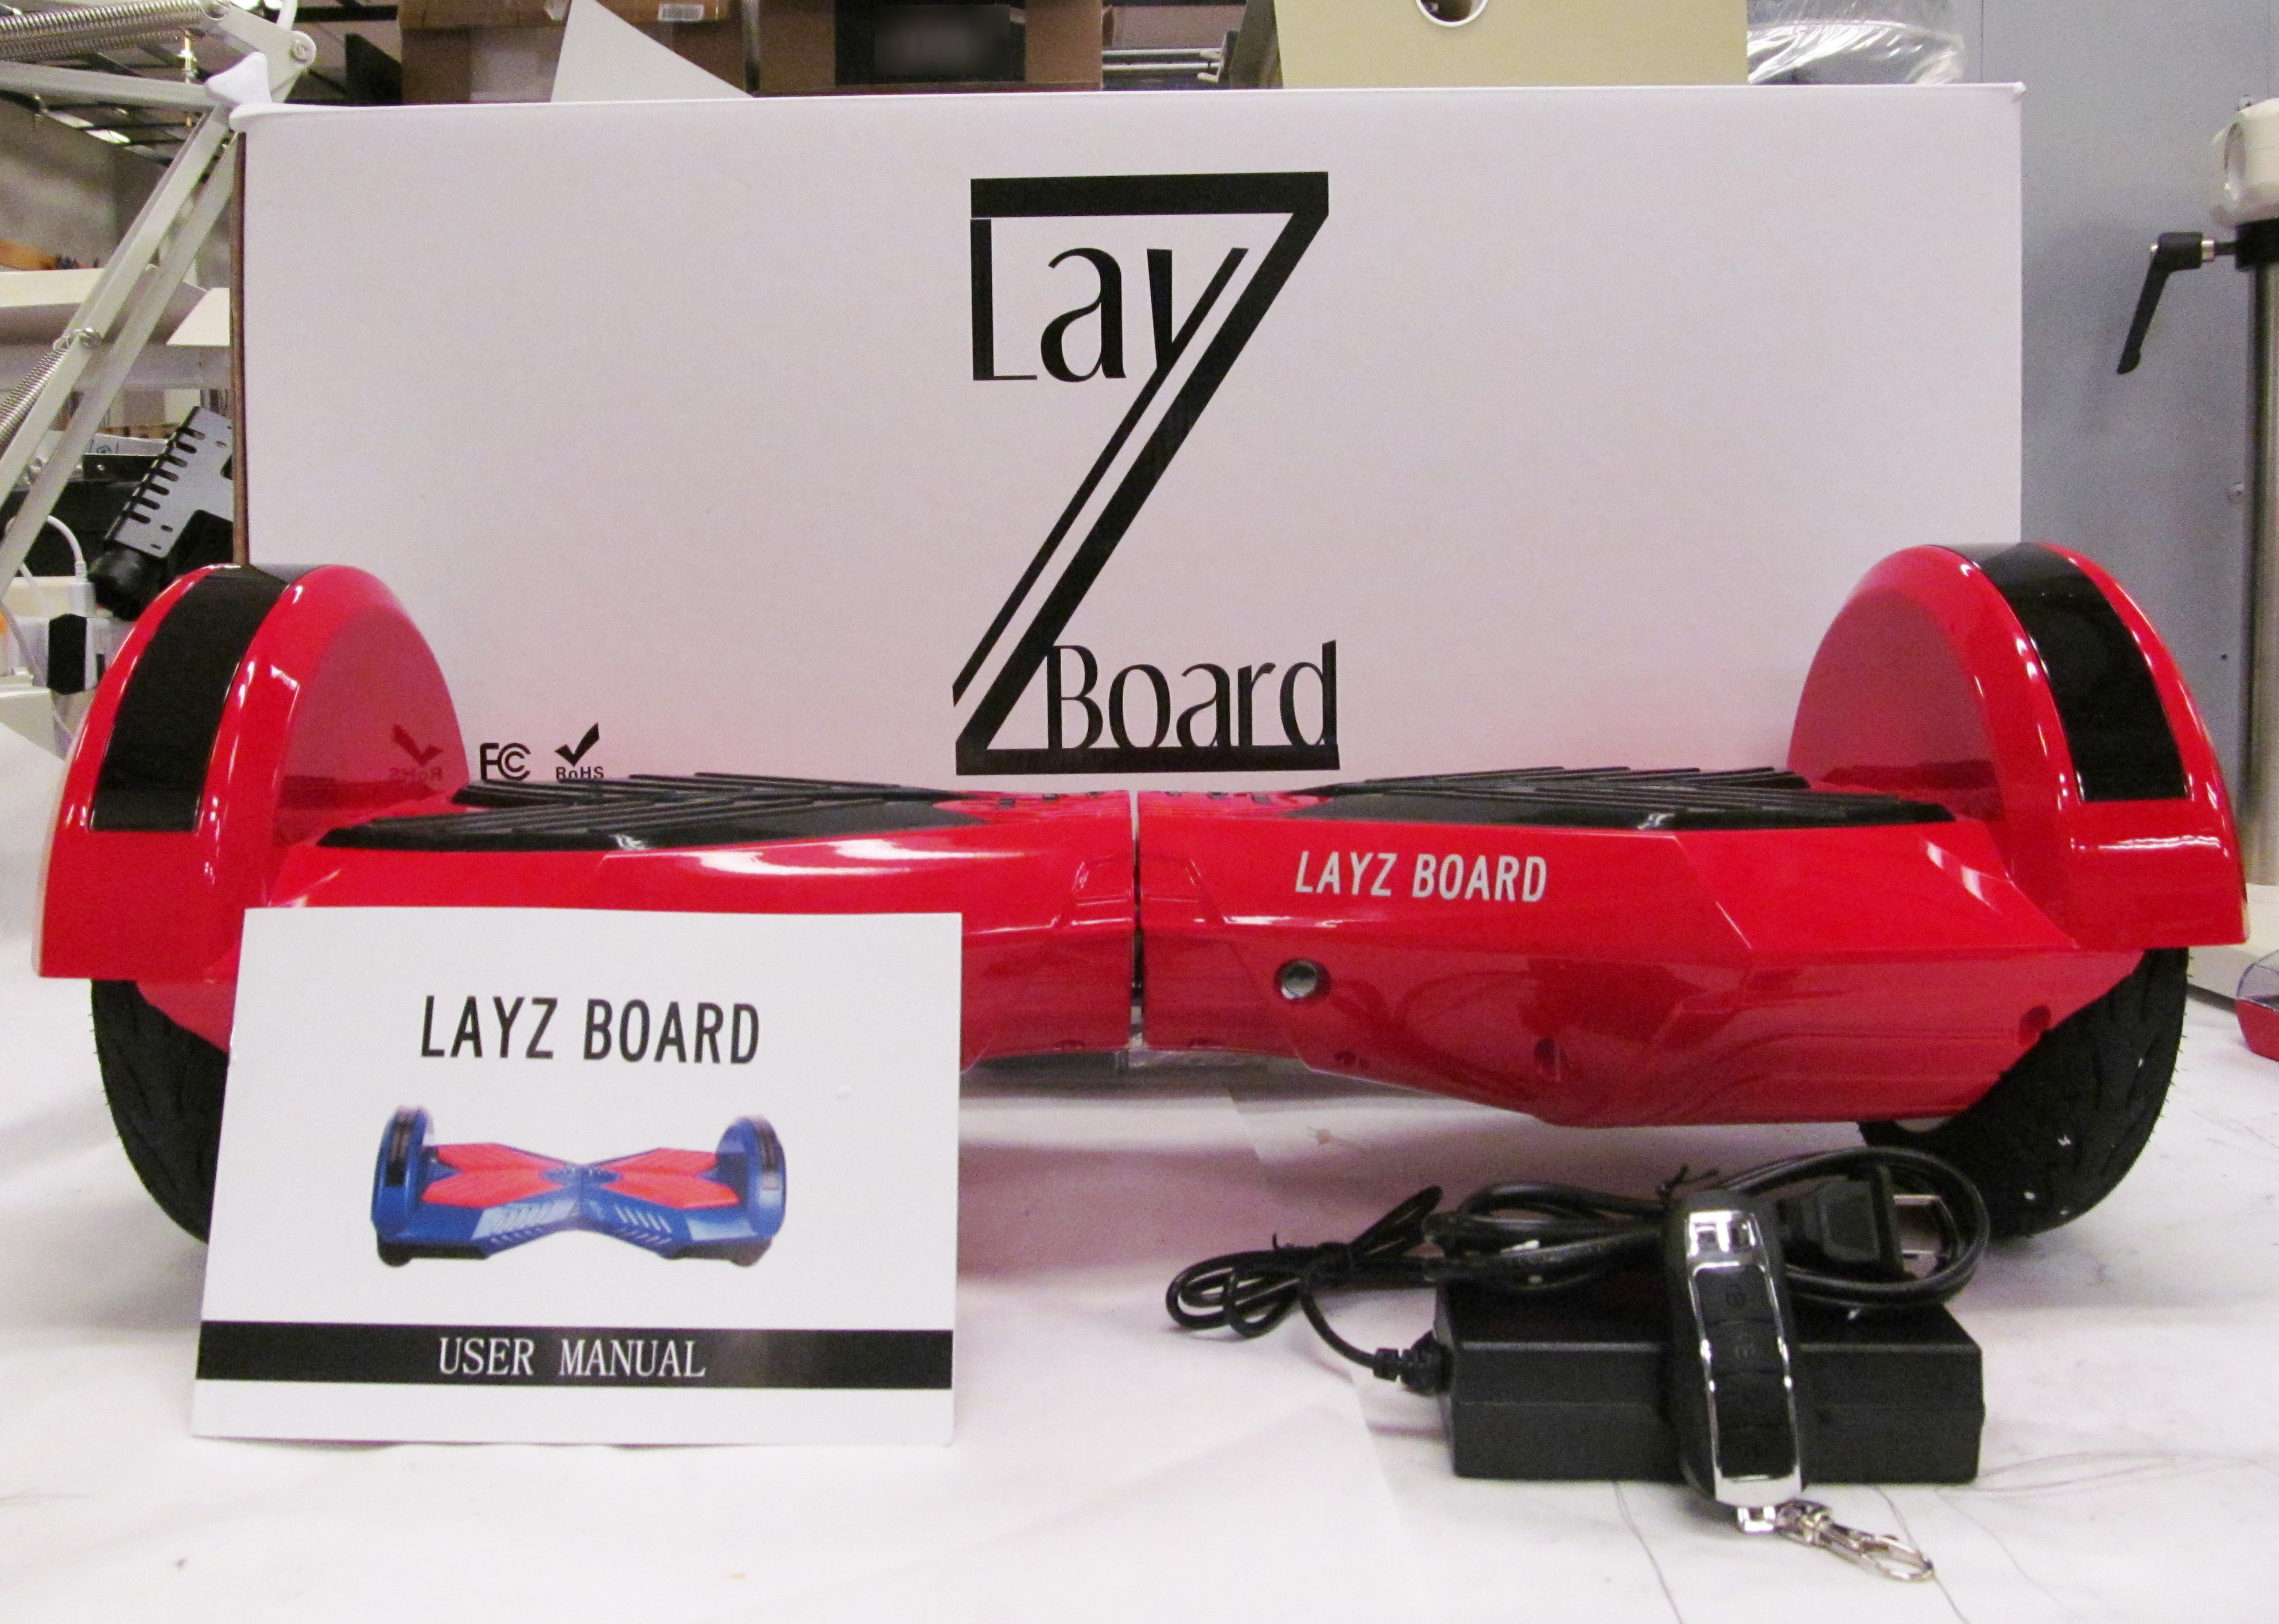 Following Fatal House Fire, CPSC Warns Consumers To Stop Using LayZ Board Hoverboards